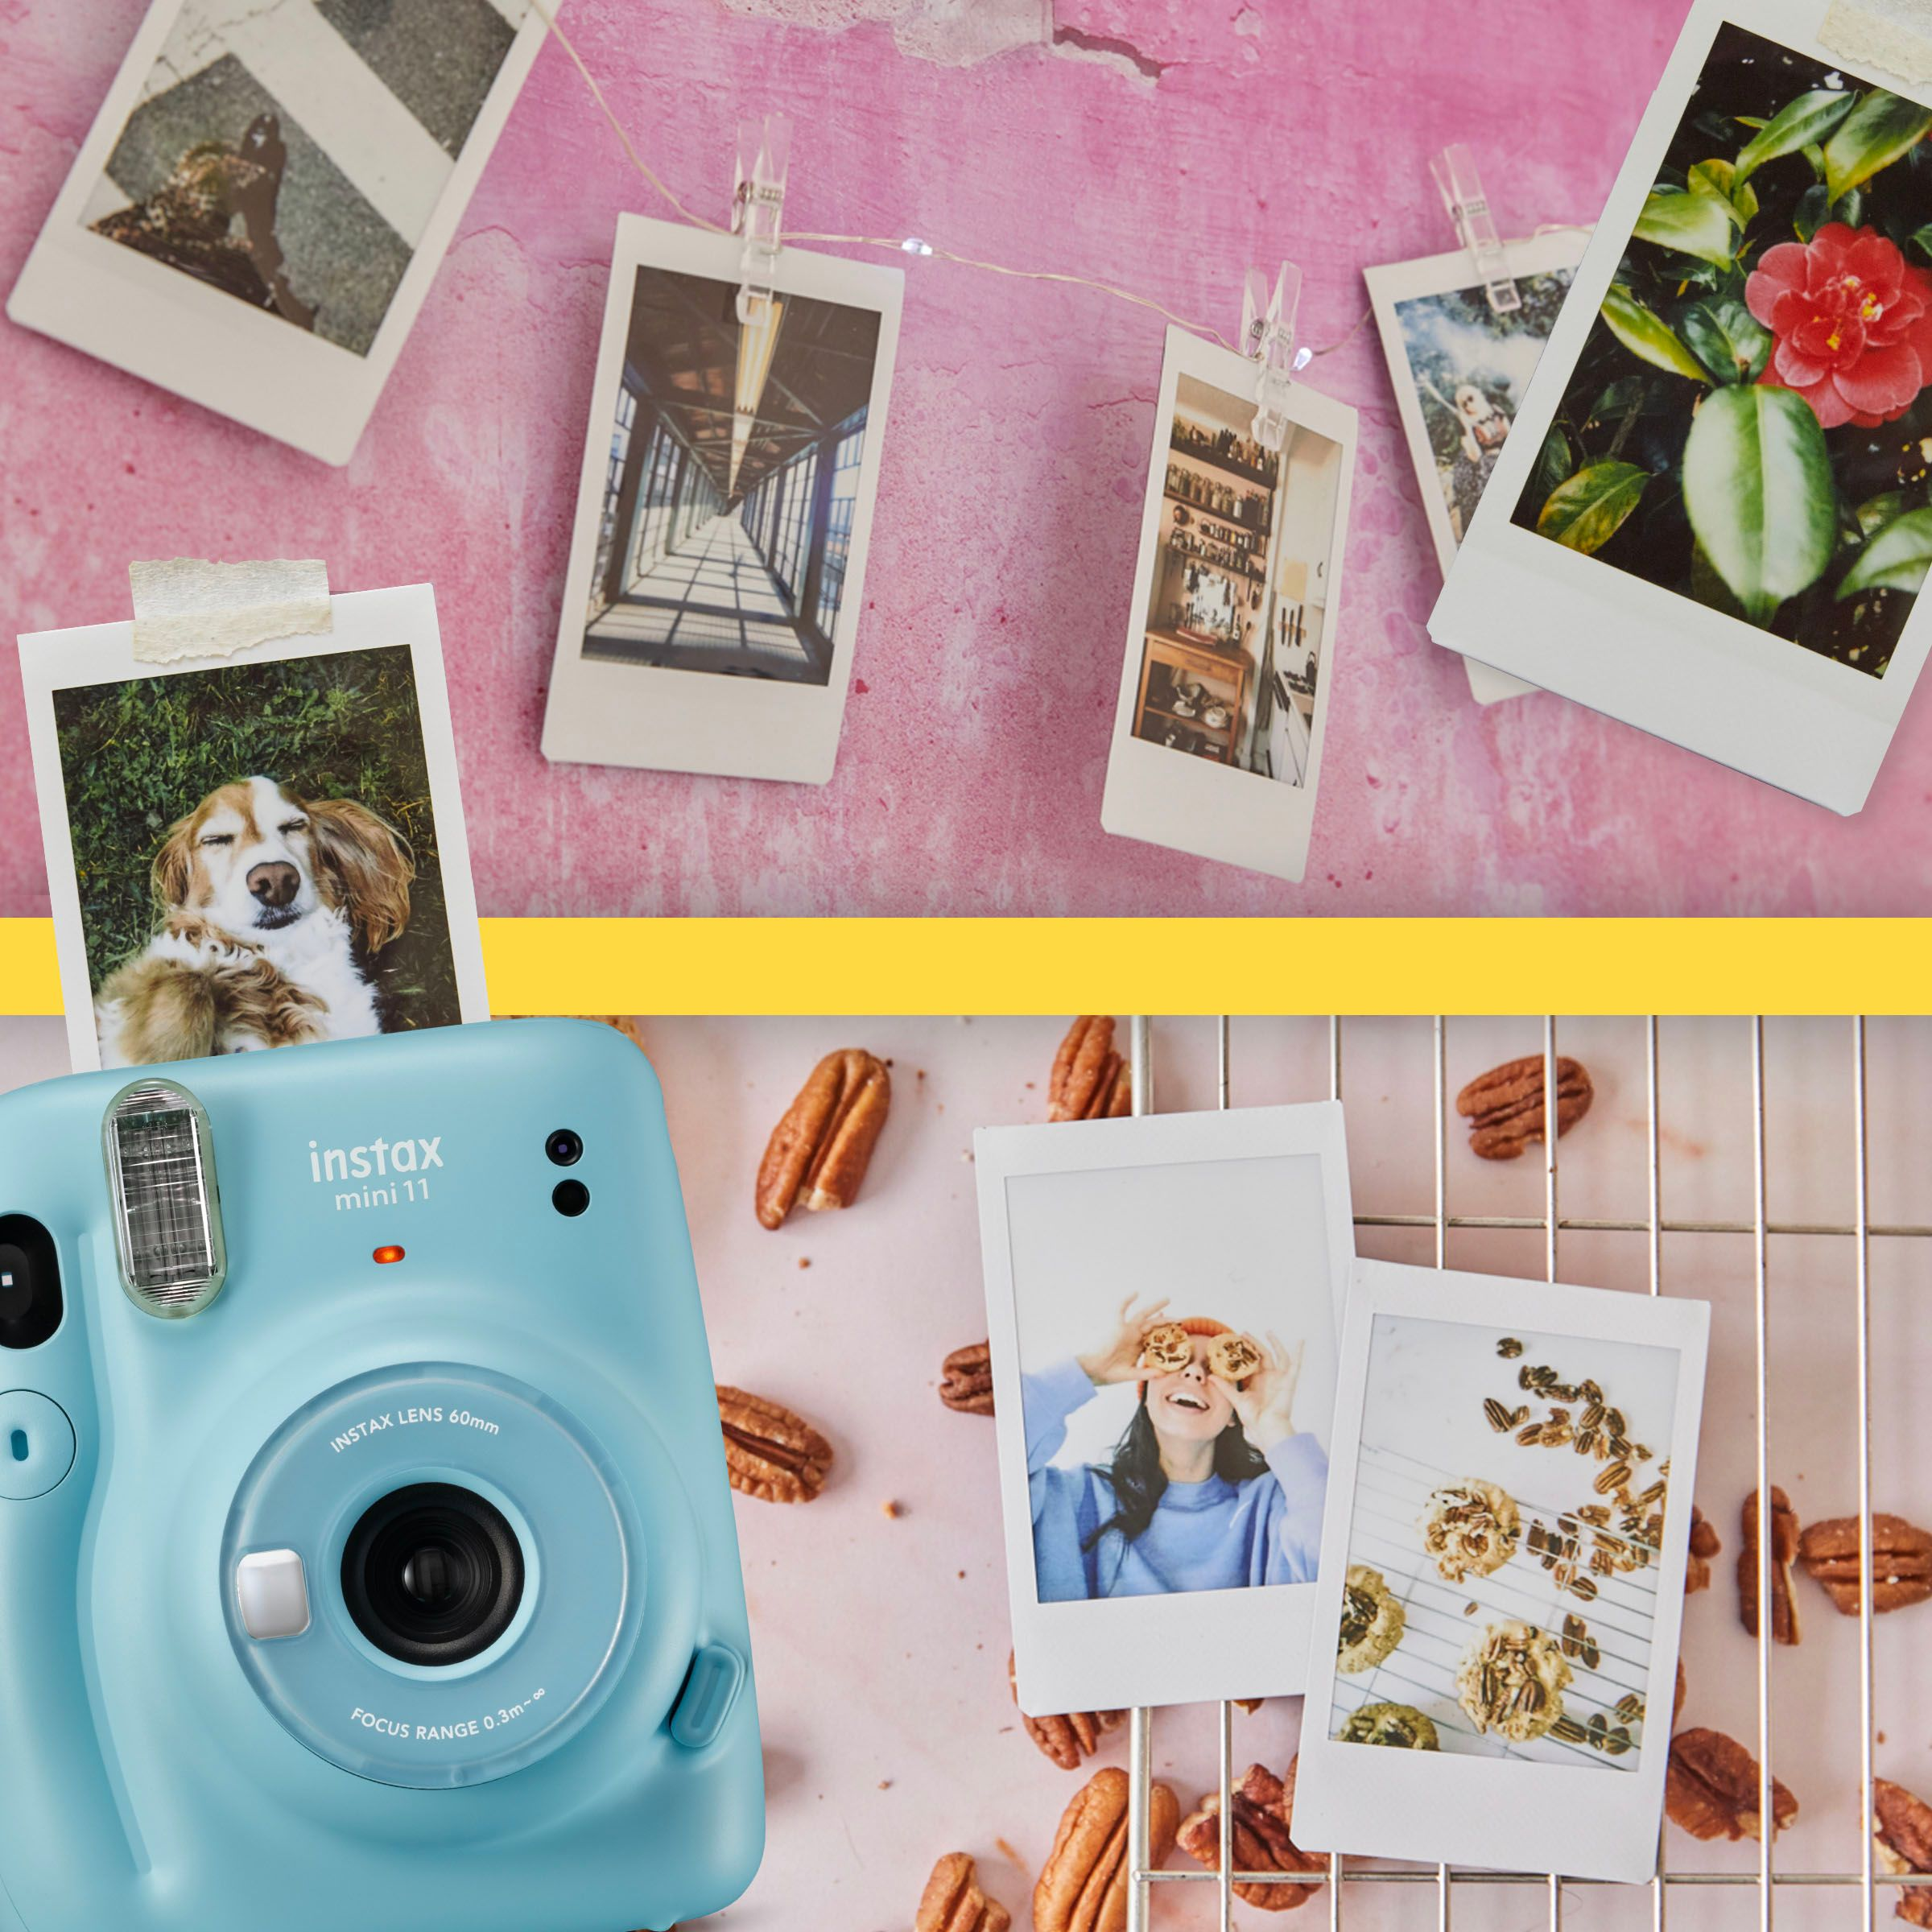 Stay at home with Instax